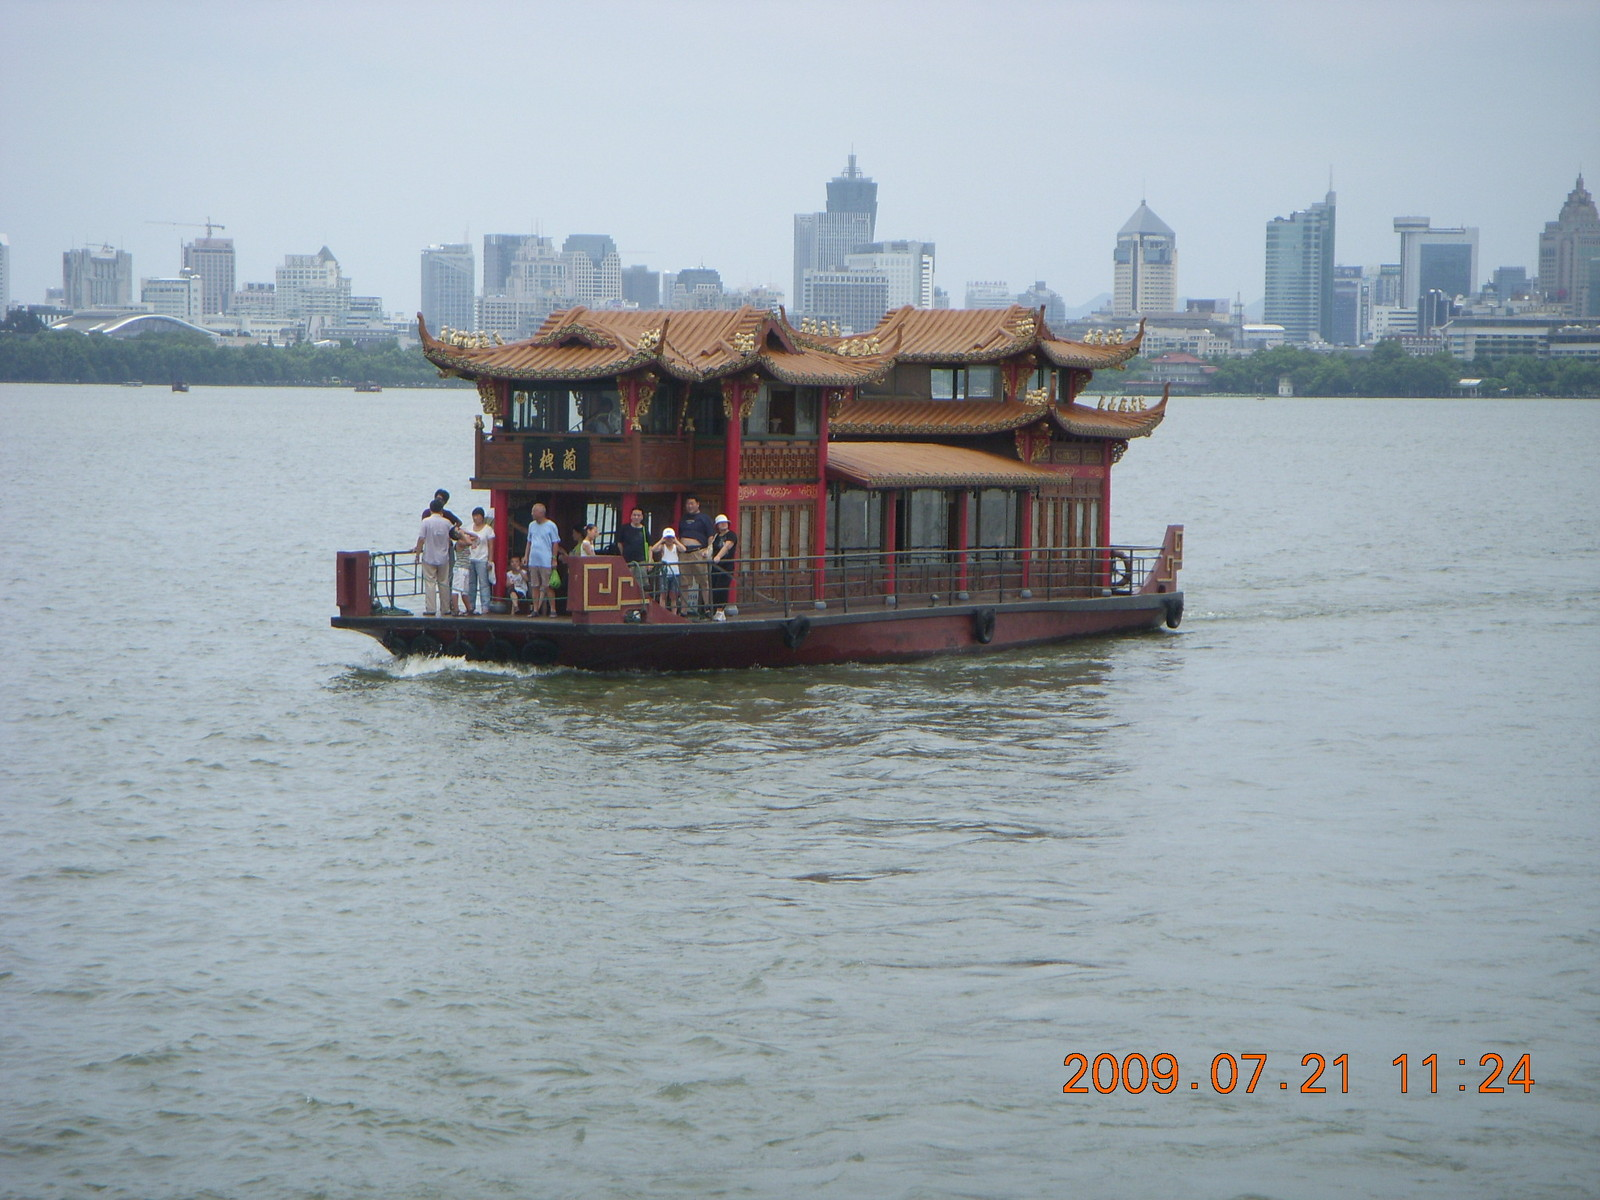 China eclipse - West Lake boat ride